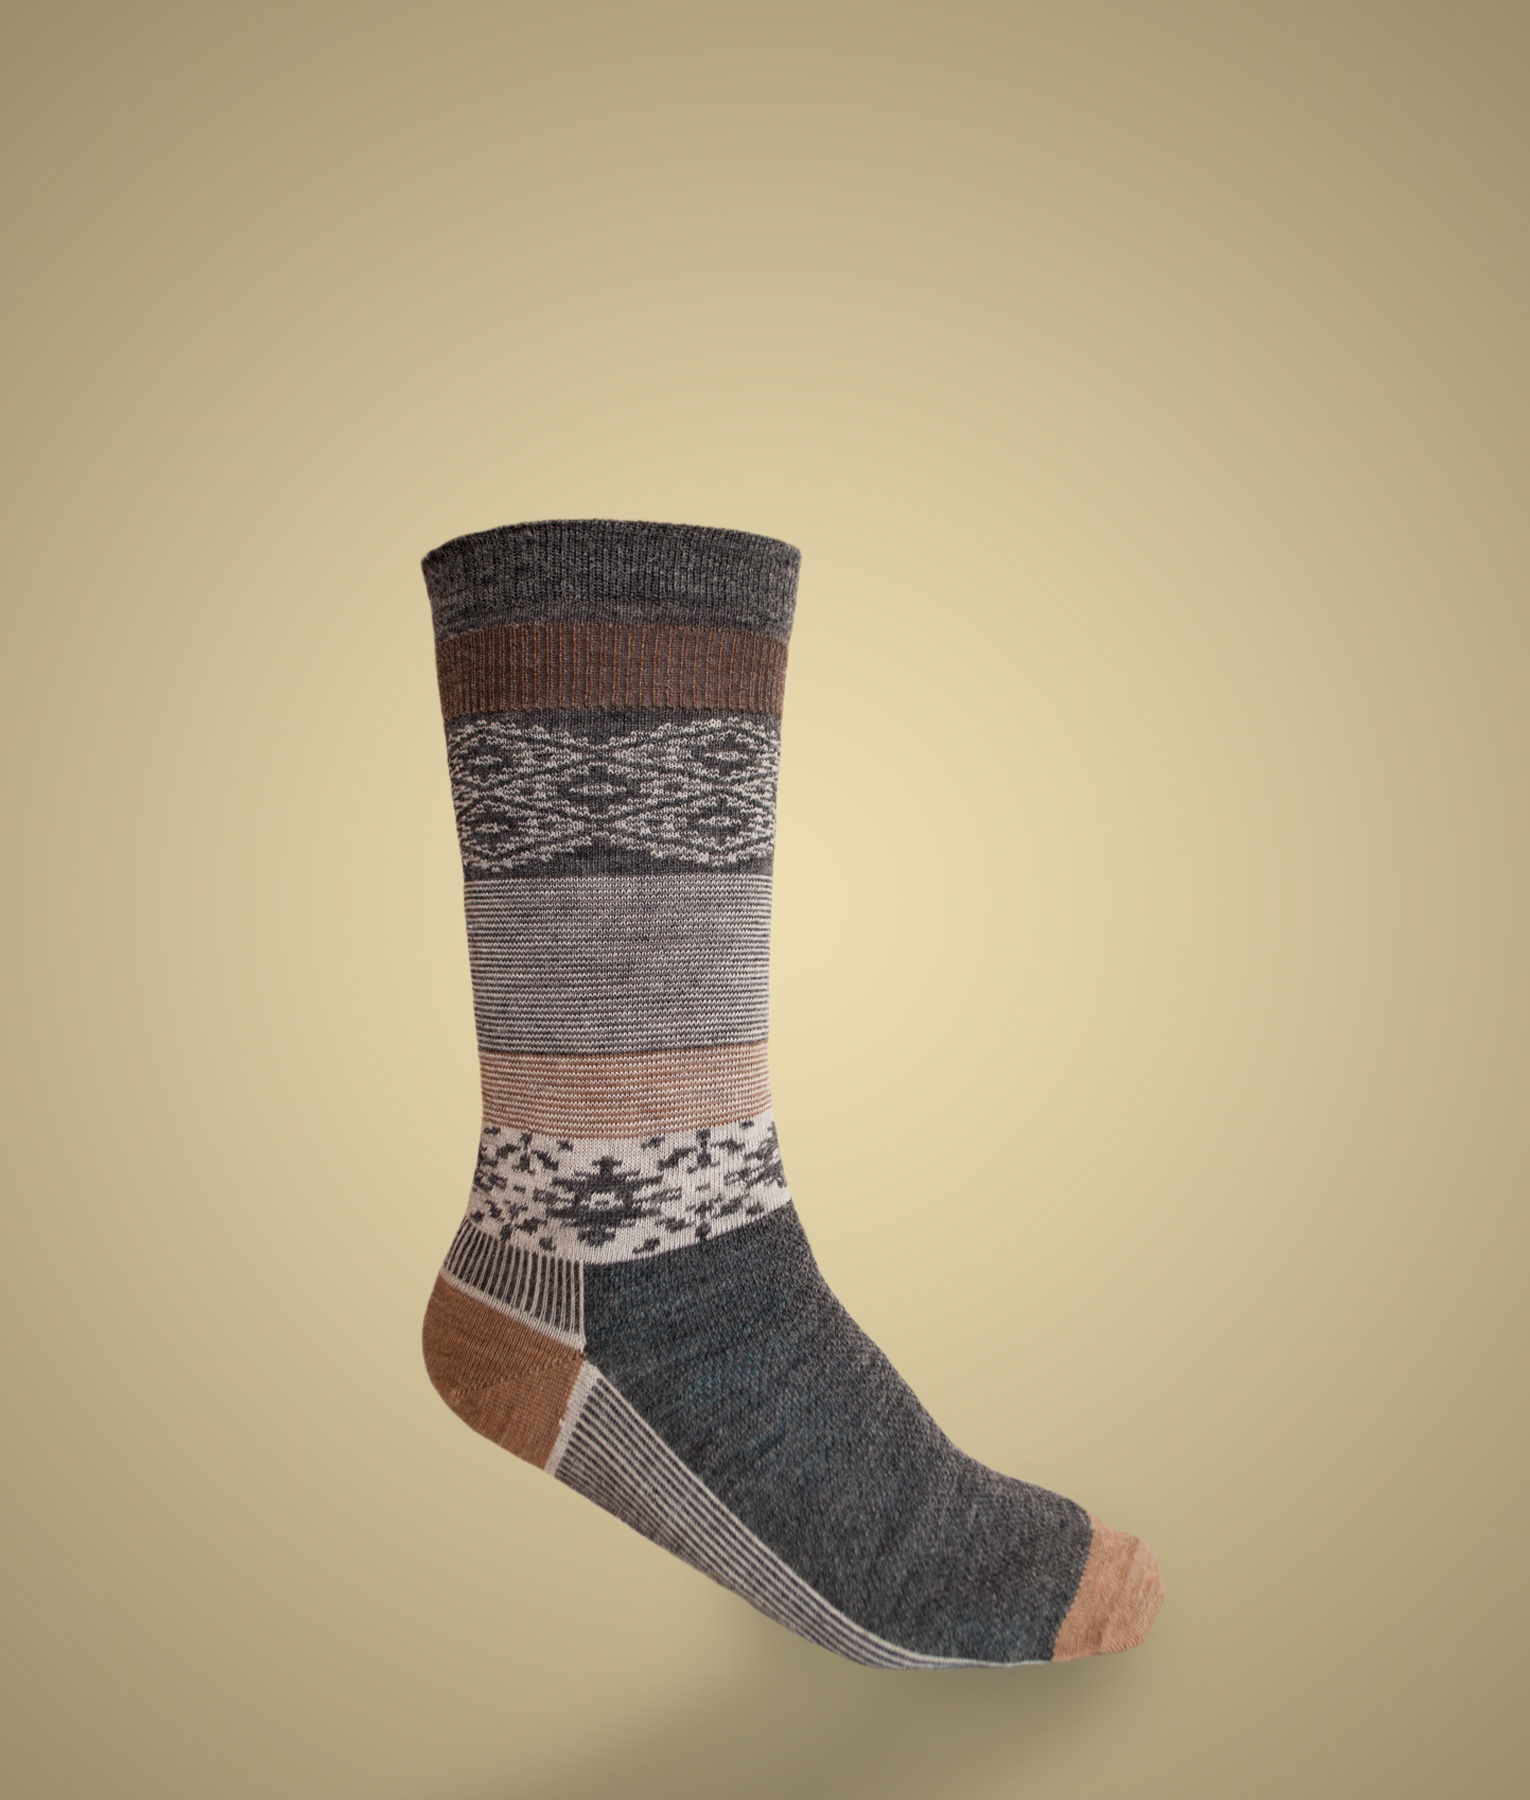 SEED STITCH ARGYLE LADIES SOCKS C001